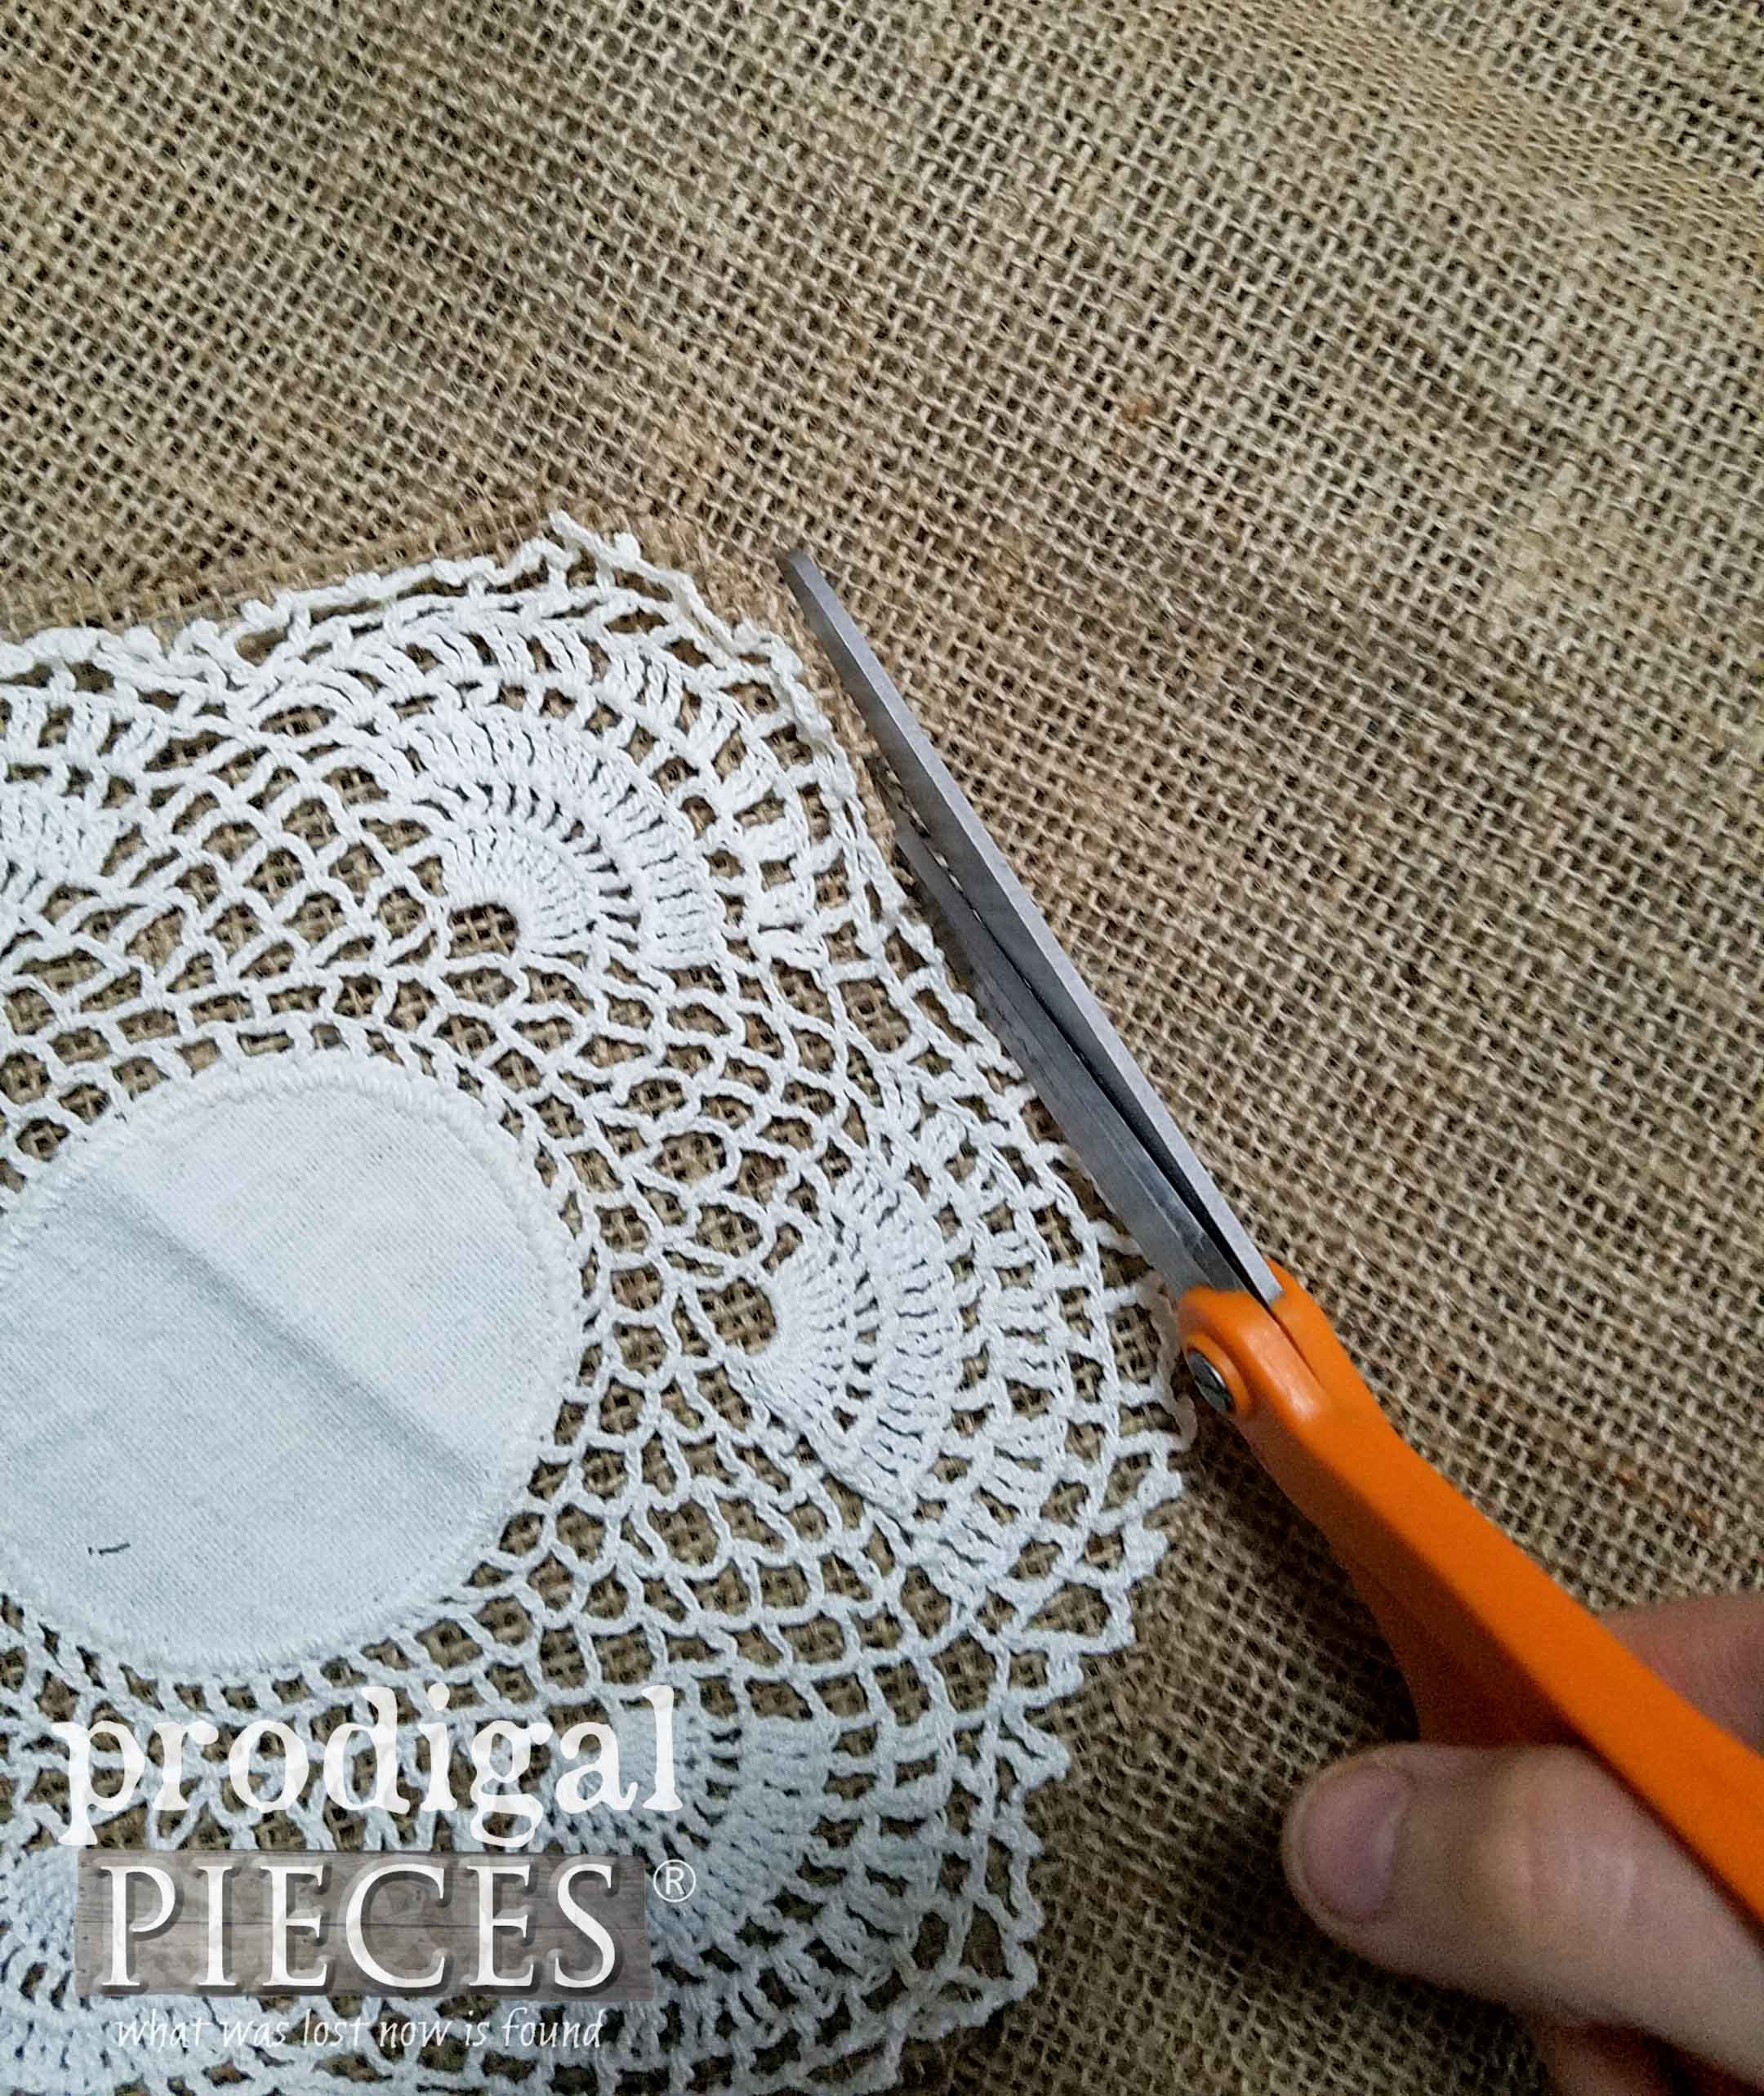 Cutting Burlap for Farmhouse Decor by Prodigal Pieces | prodigalpieces.com